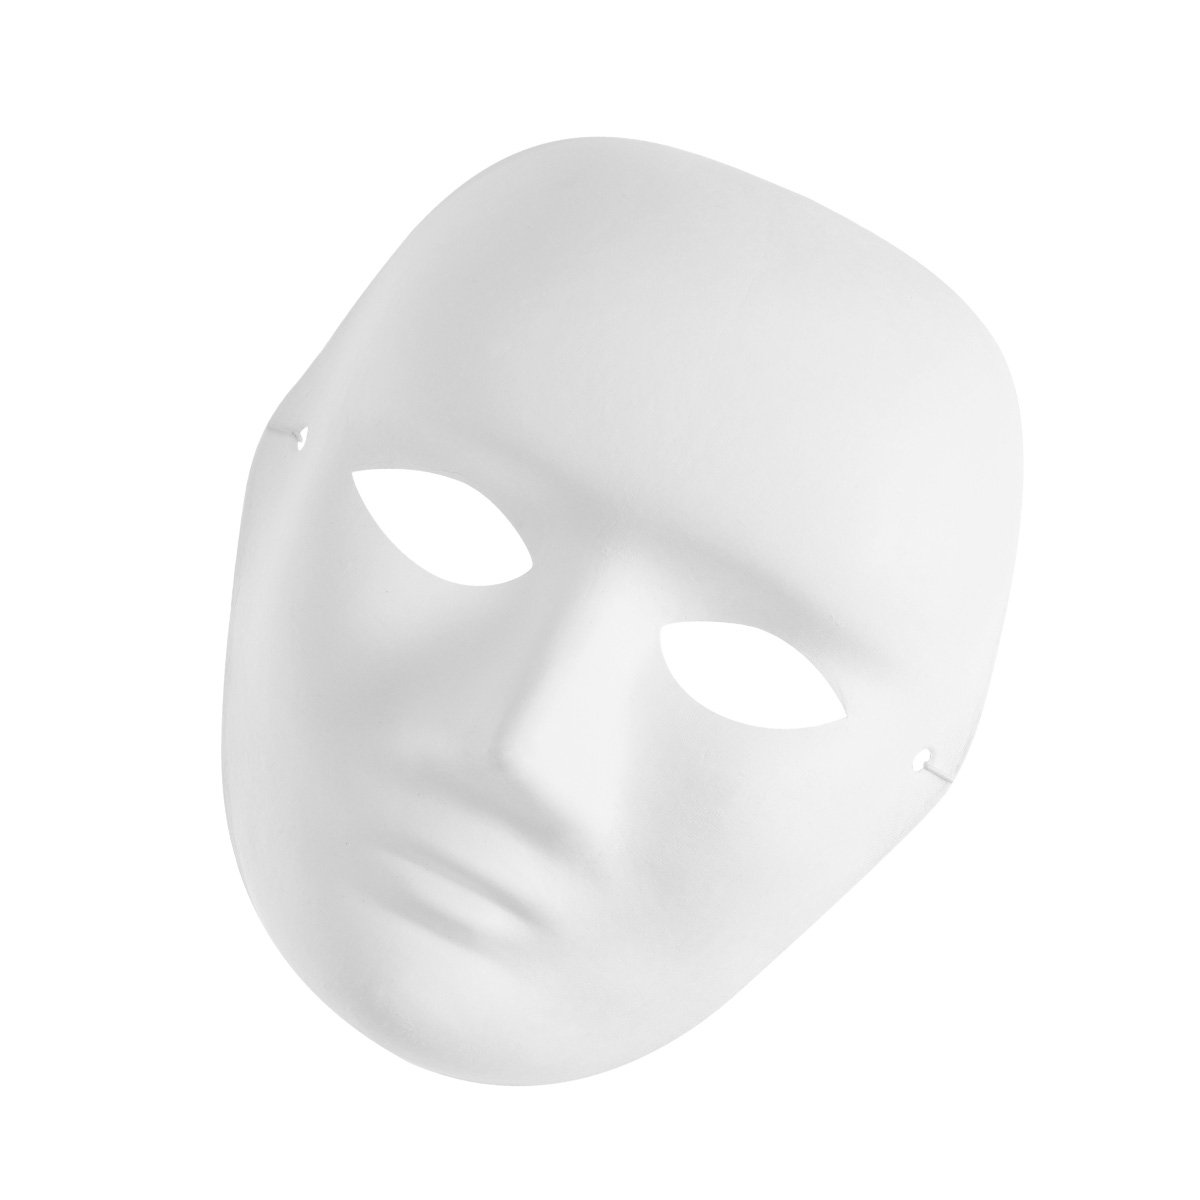 Amazon.com: Amosfun Mens Portrait Mask Painting Mask Full Face Costume Pulp Blank White Mask for DIY Paint Halloween Party Mask: Clothing